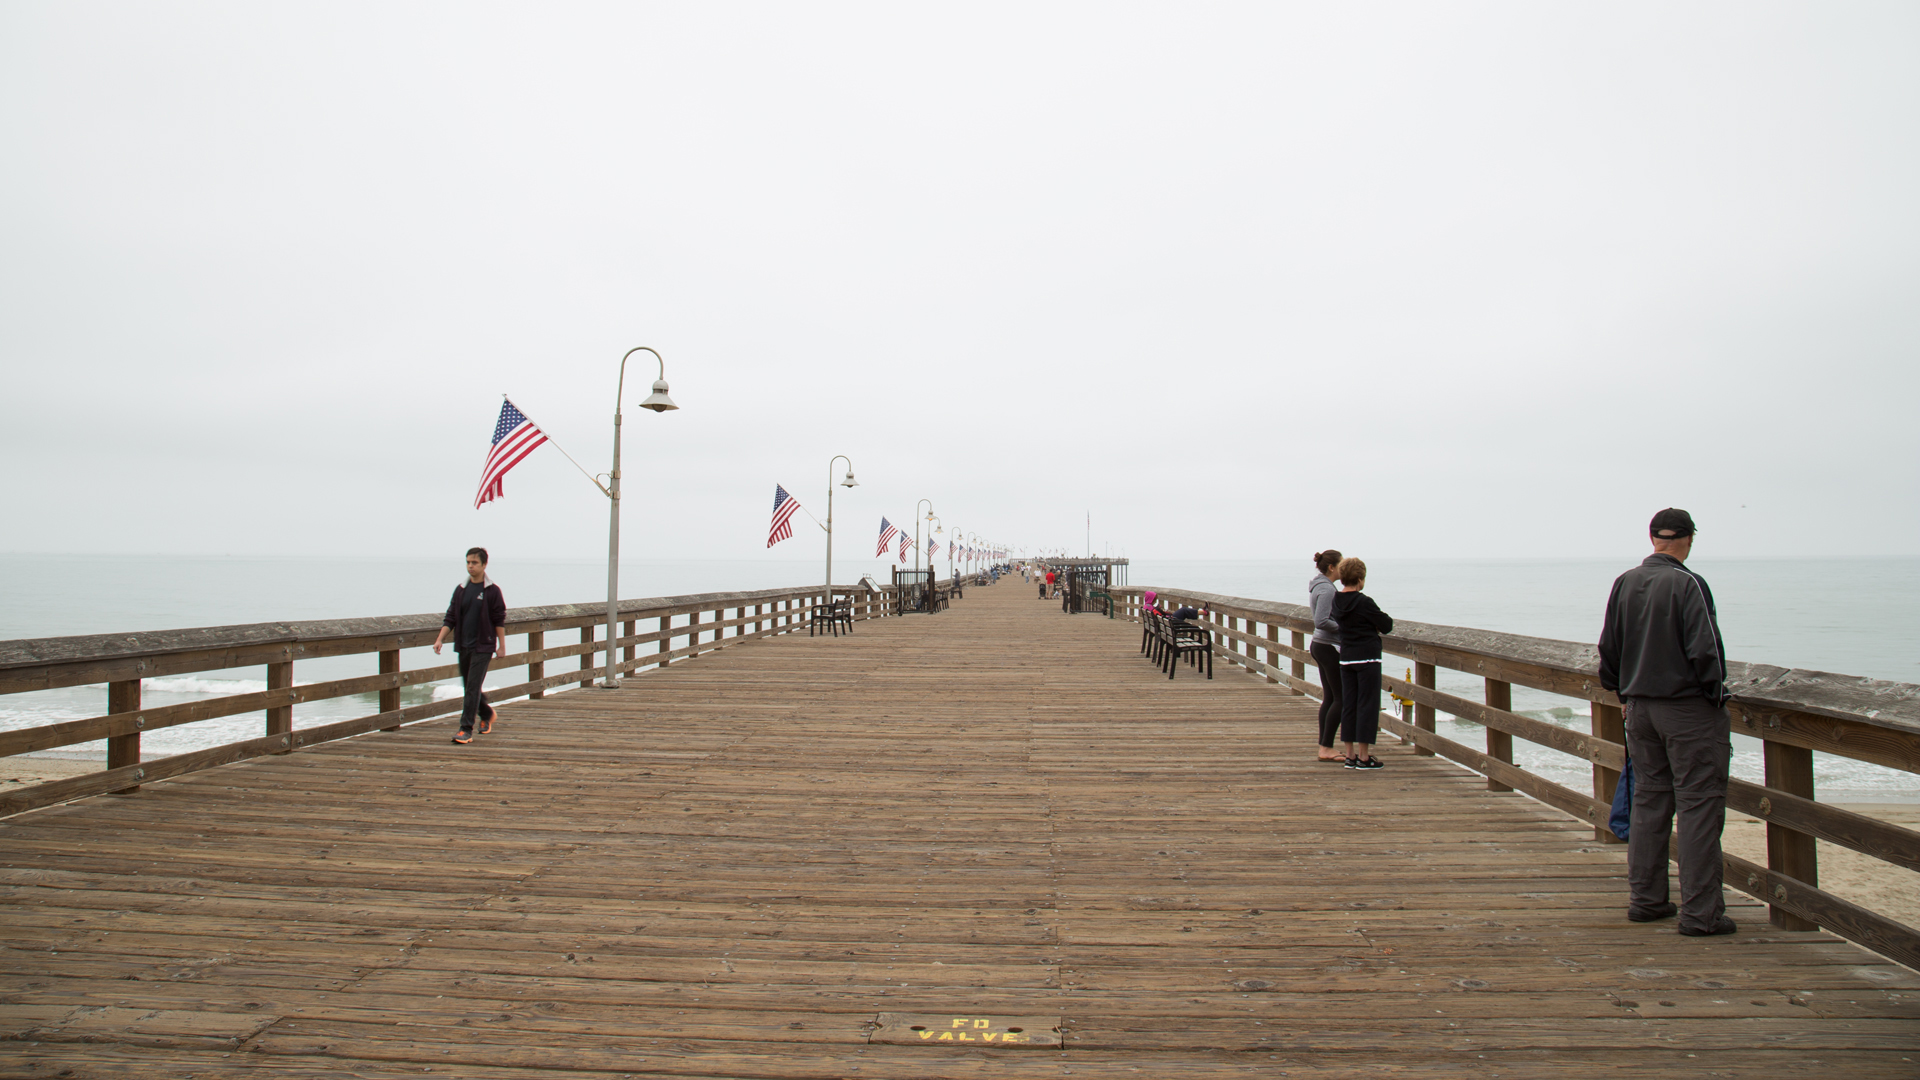 Holiday at the Pier